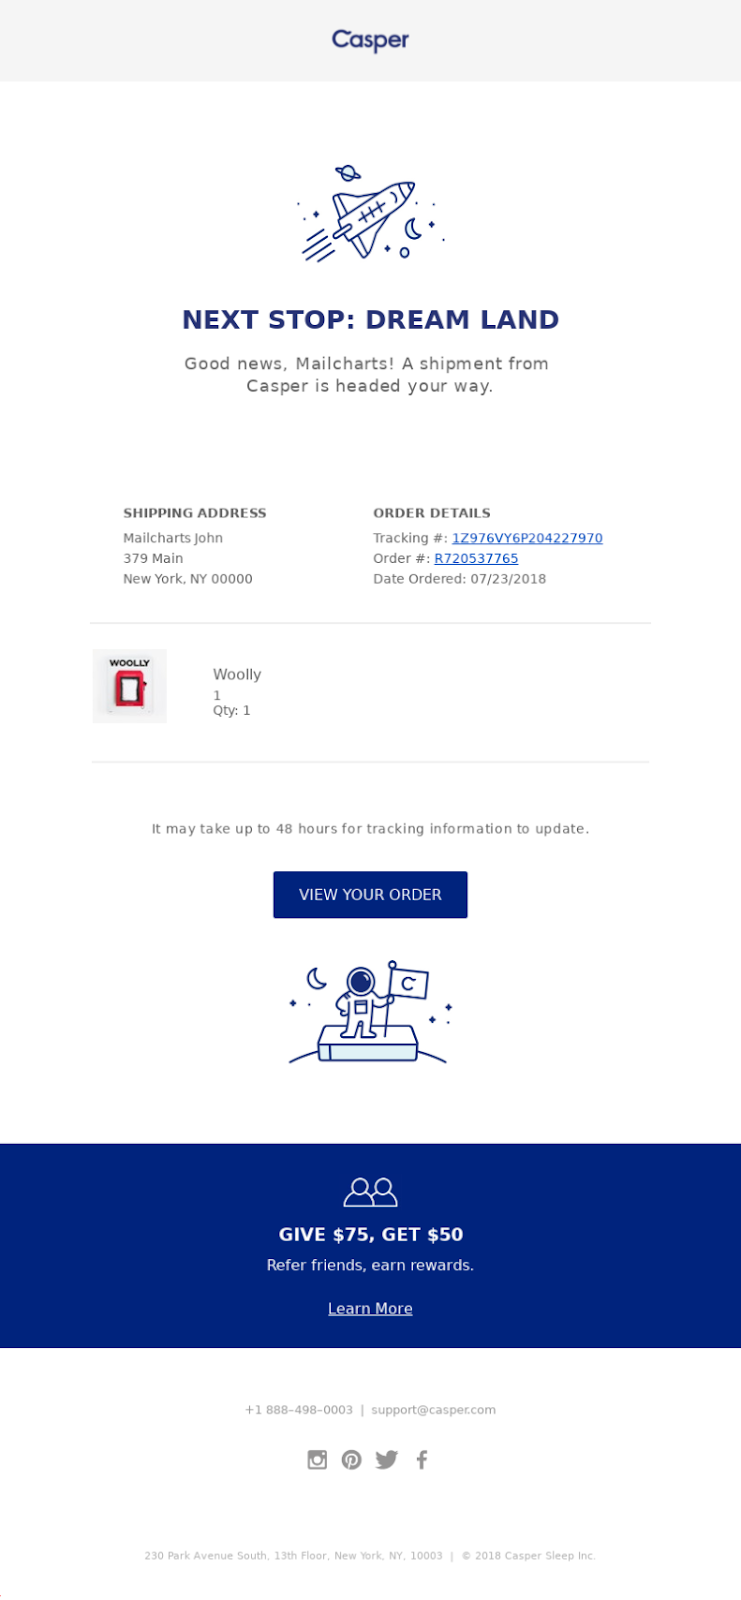 THE FULL-JOURNEY CONFIRMATION EMAIL BY CASPER